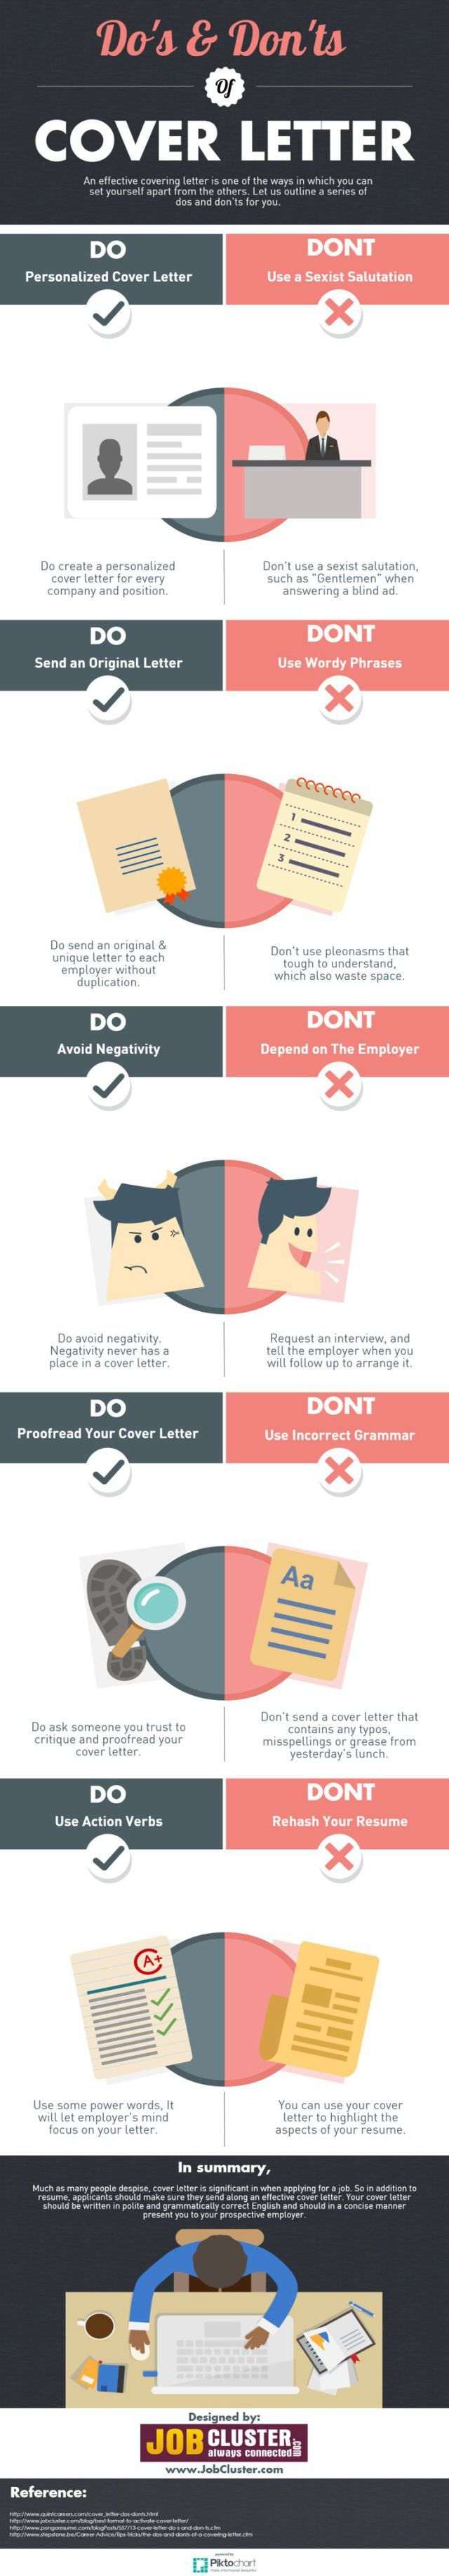 infographic cover letter dos and donts for job seekers infographic - How To Do A Cover Letter For A Job